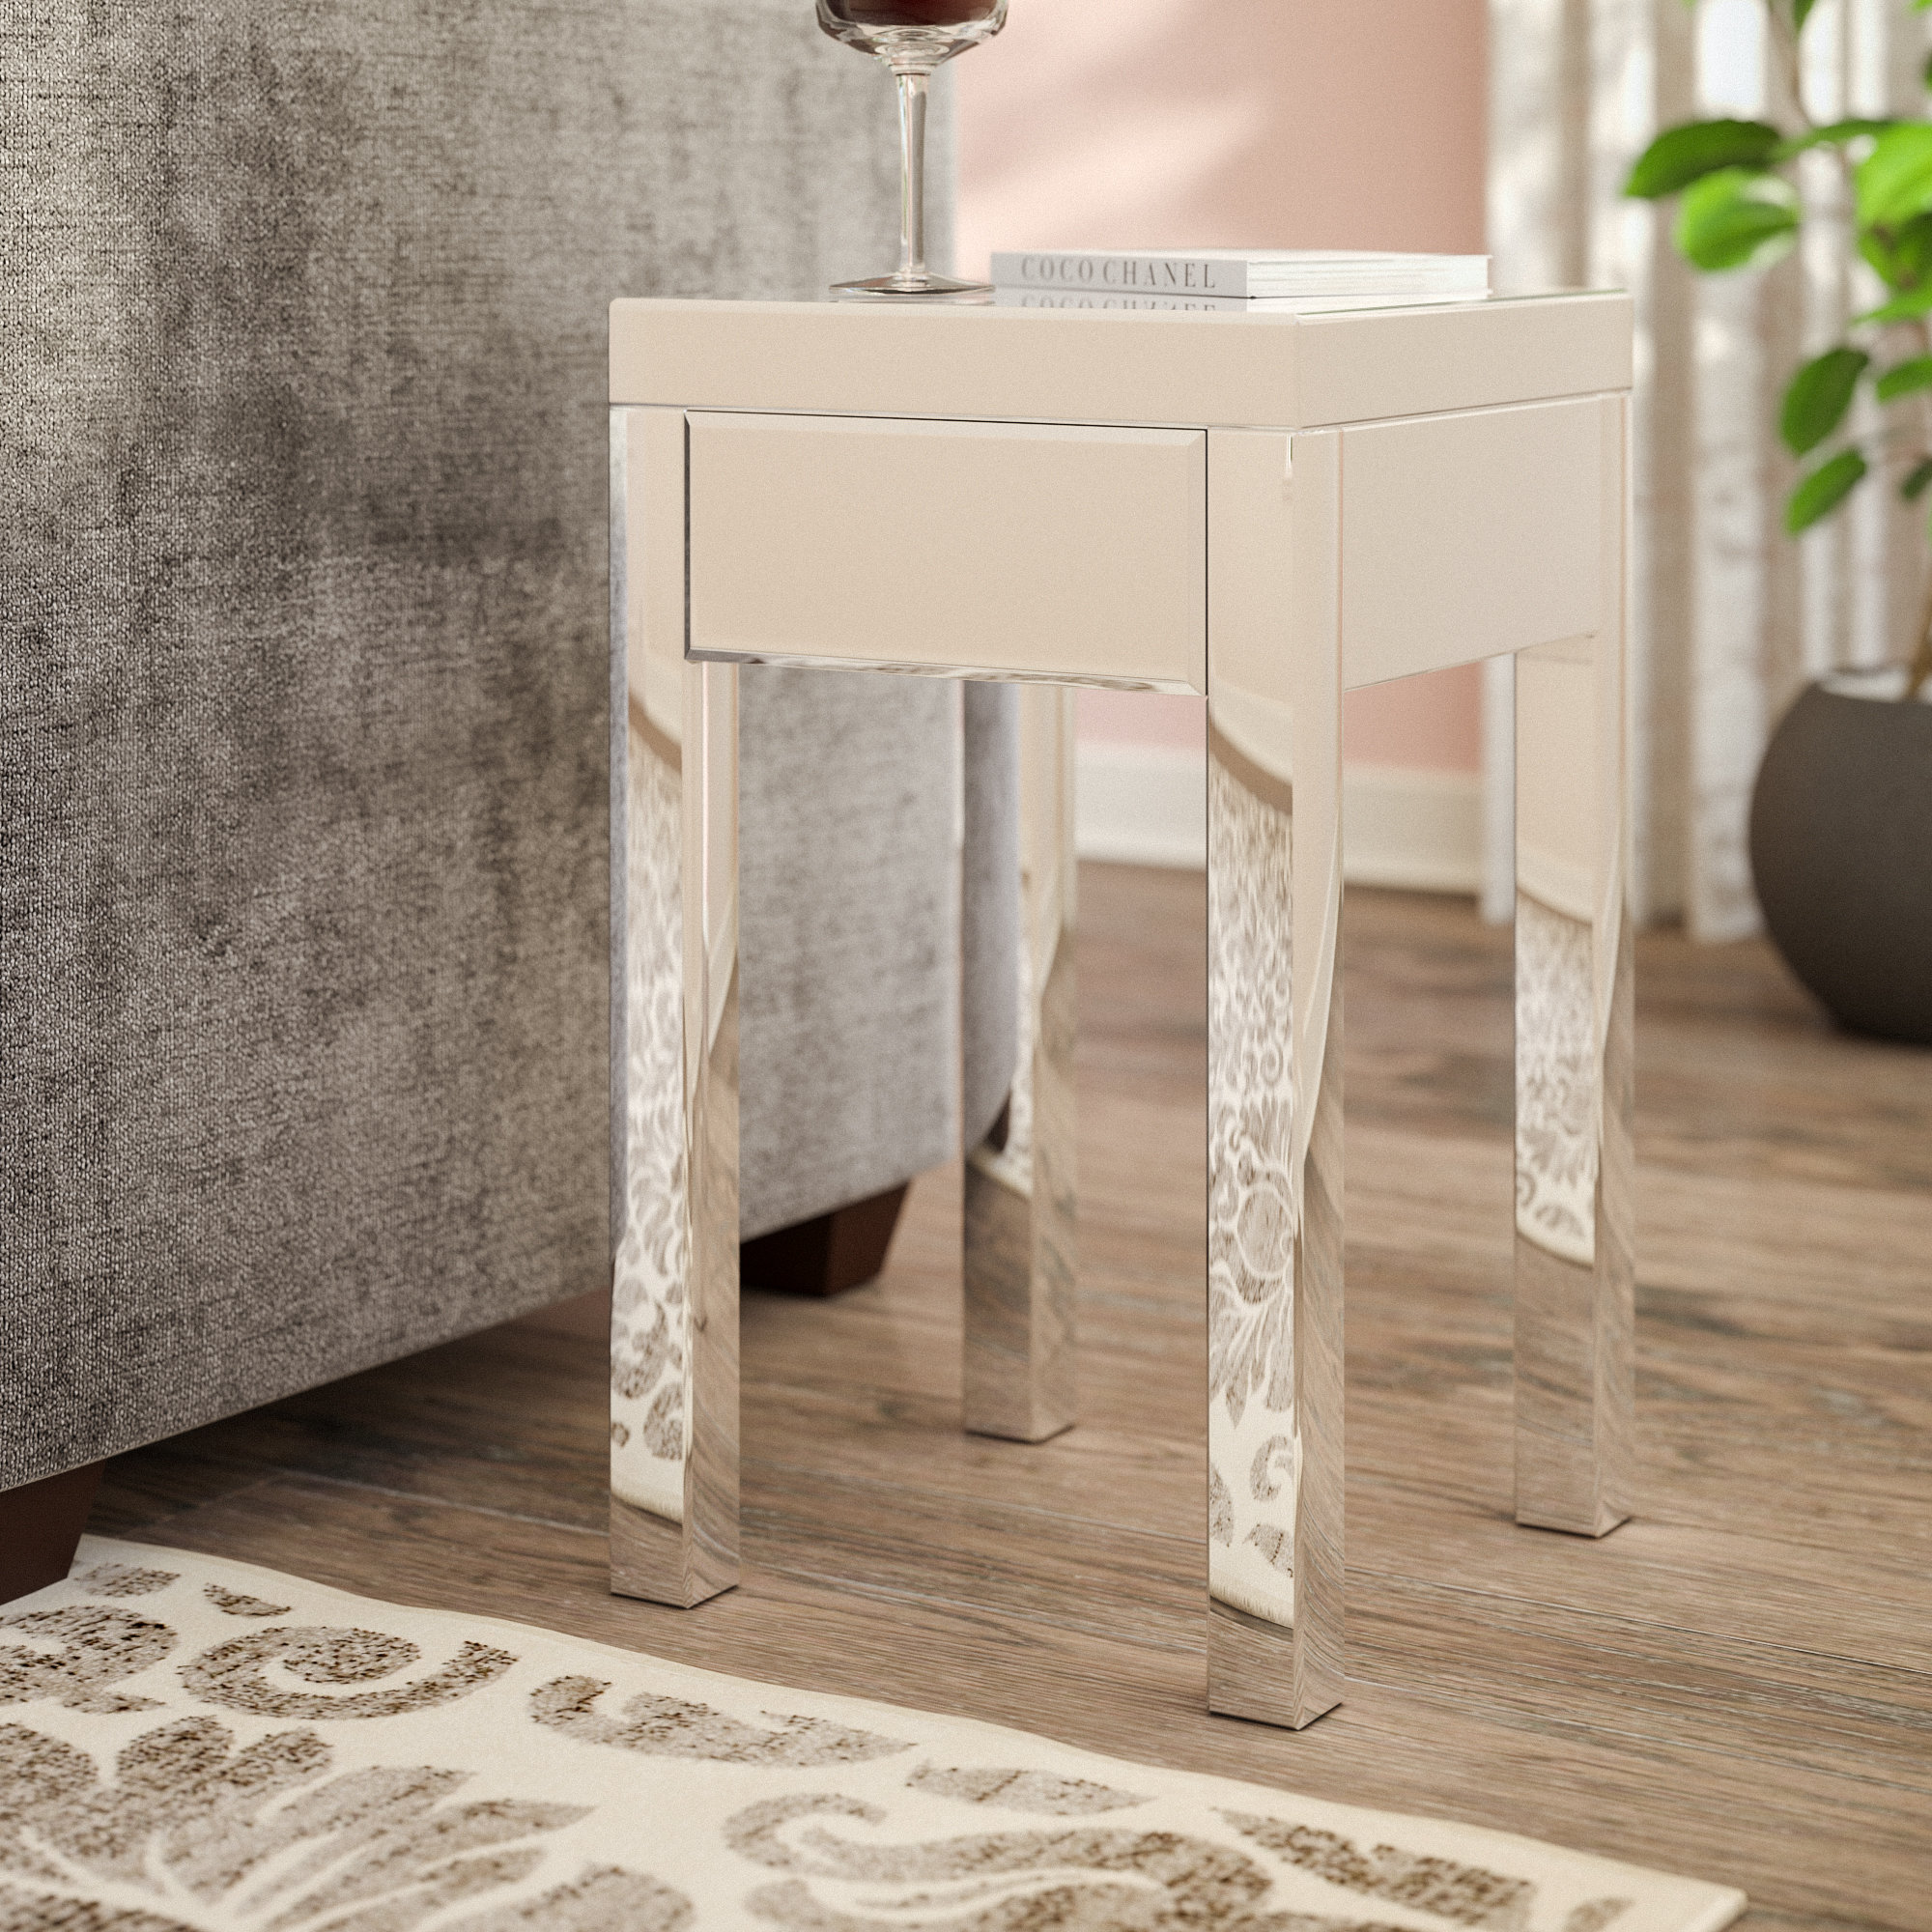 small mirrored accent table keels end with storage triangle modern bedside tables nightstands target oak wood side corner for bedroom grey patterned armchair unique metal coffee